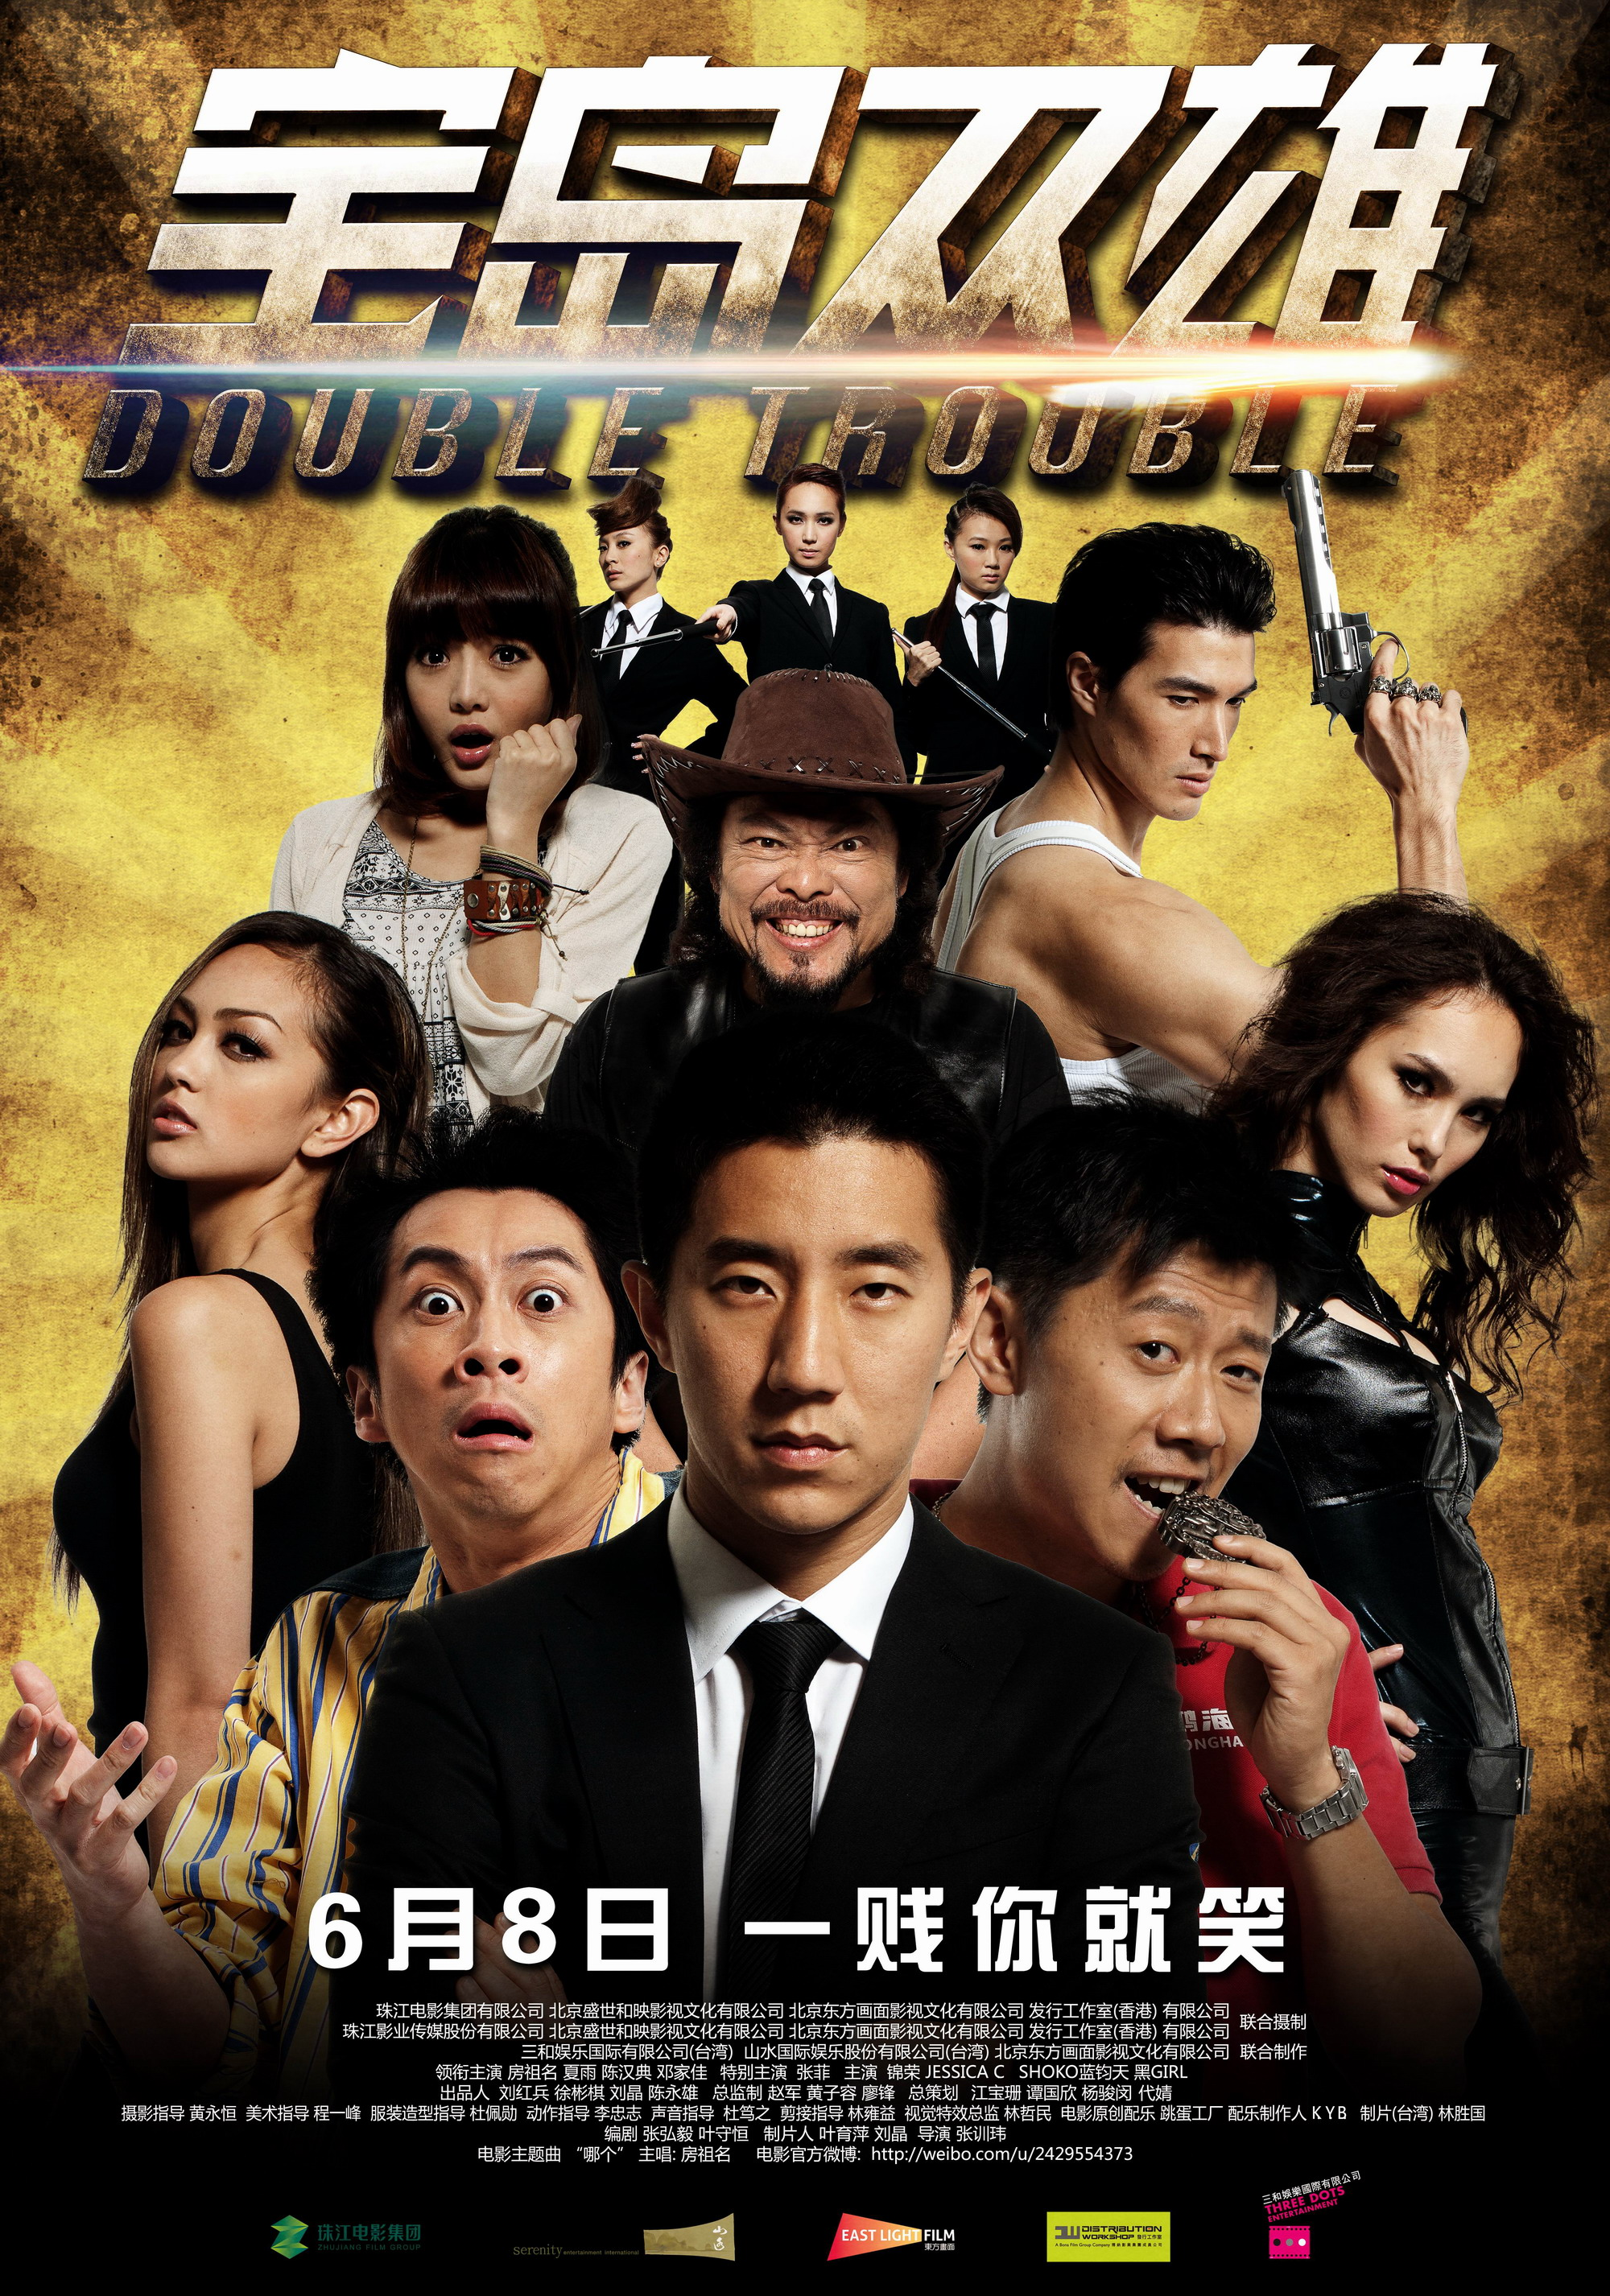 double trouble简谱